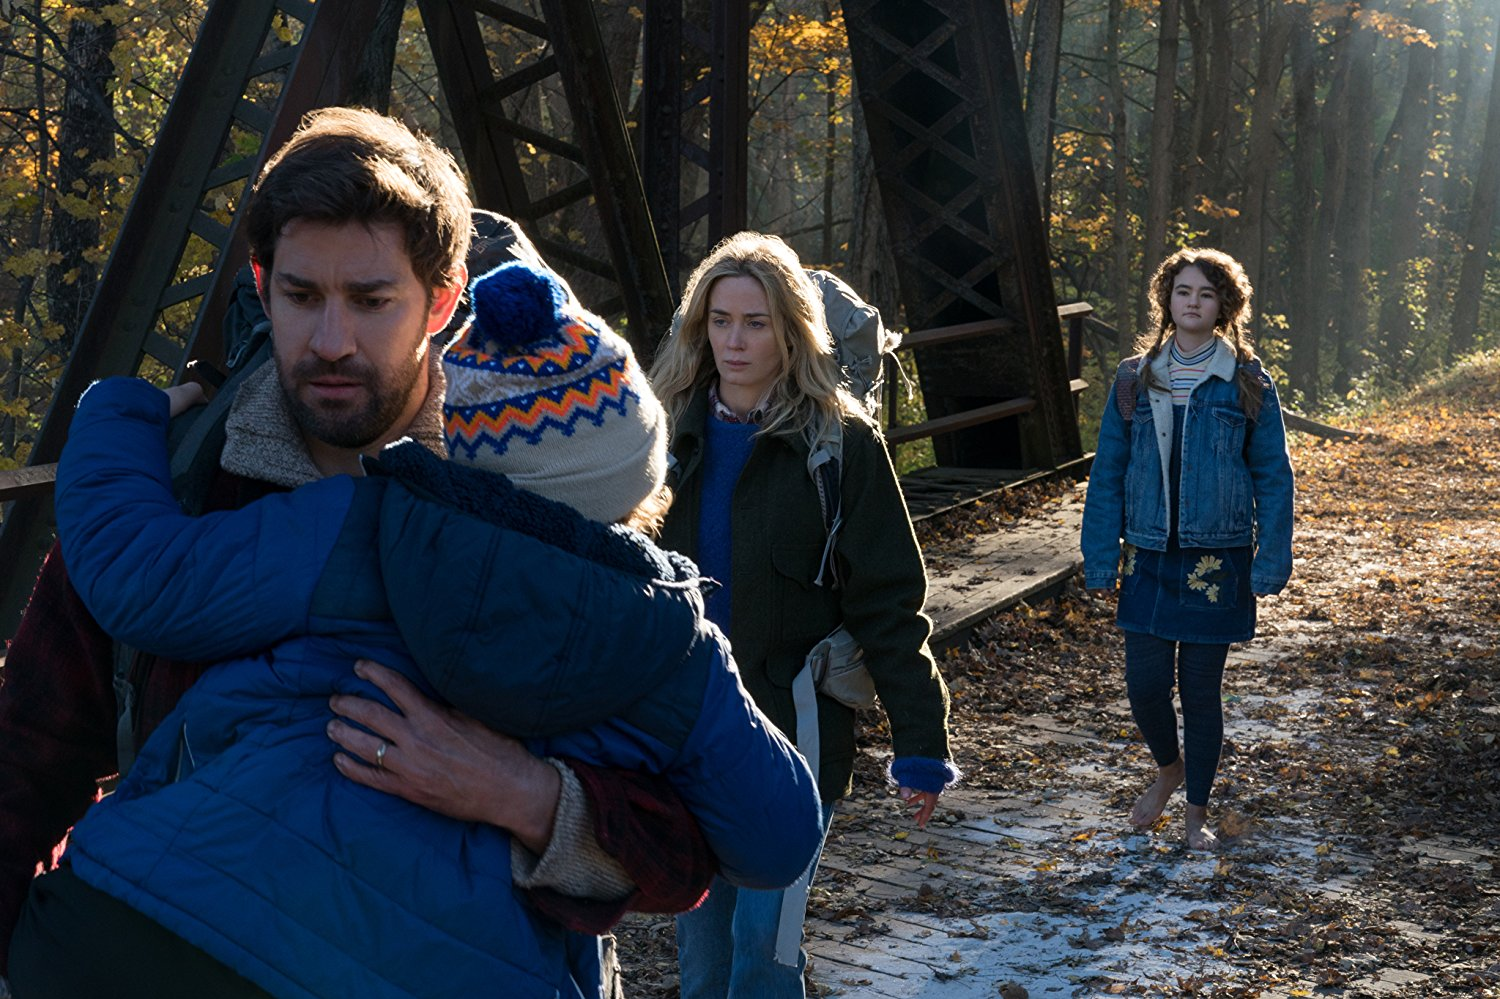 'A Quiet Place' is a tense thriller that uses sound to terrify its audience